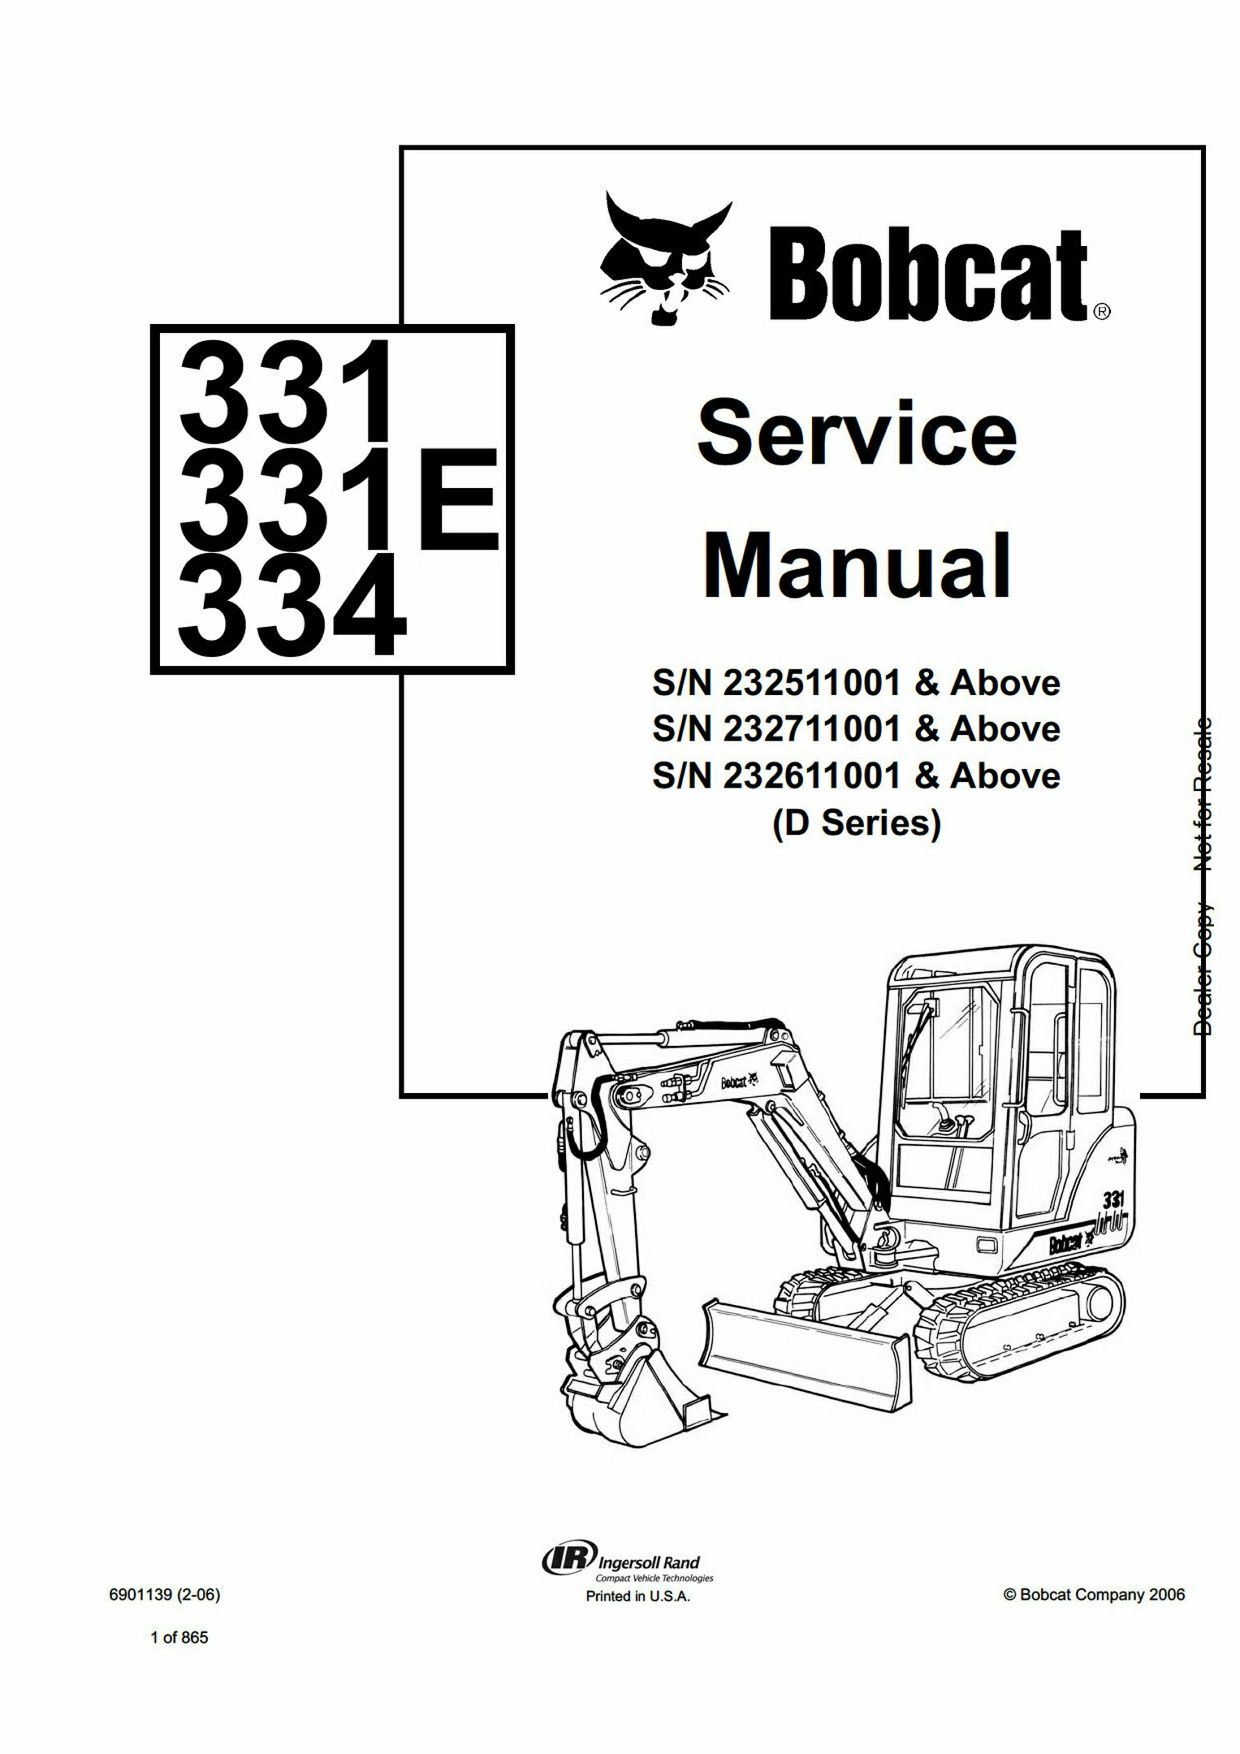 medium resolution of pdf bobcat 331 331e 334 compact excavator service manual sn 232611001 and above